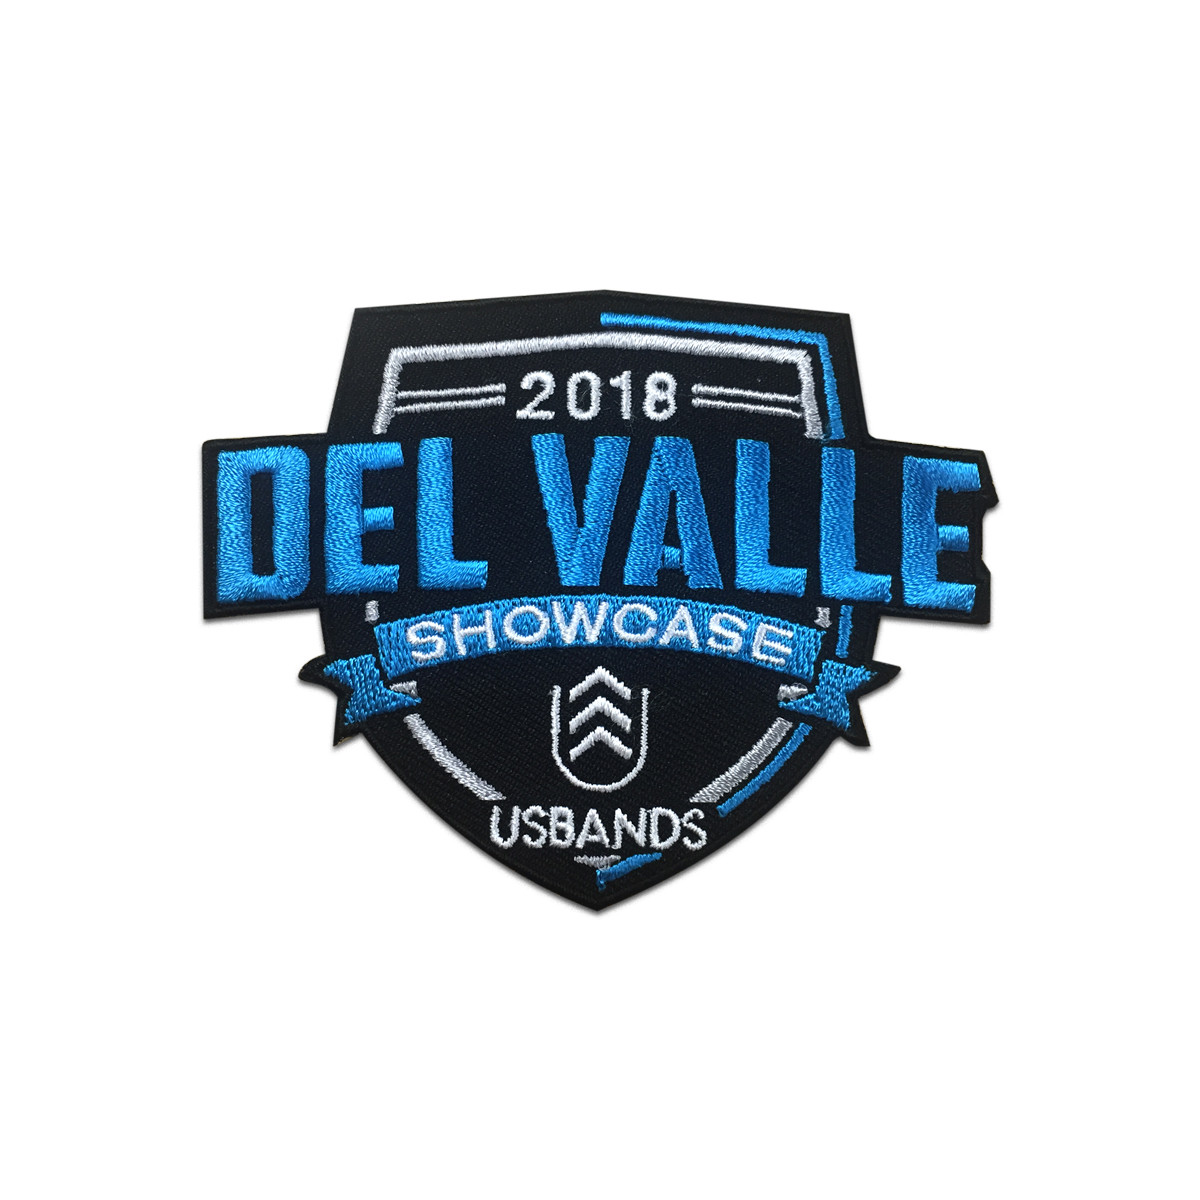 2018 USBands Del Valle Showcase Event Patch